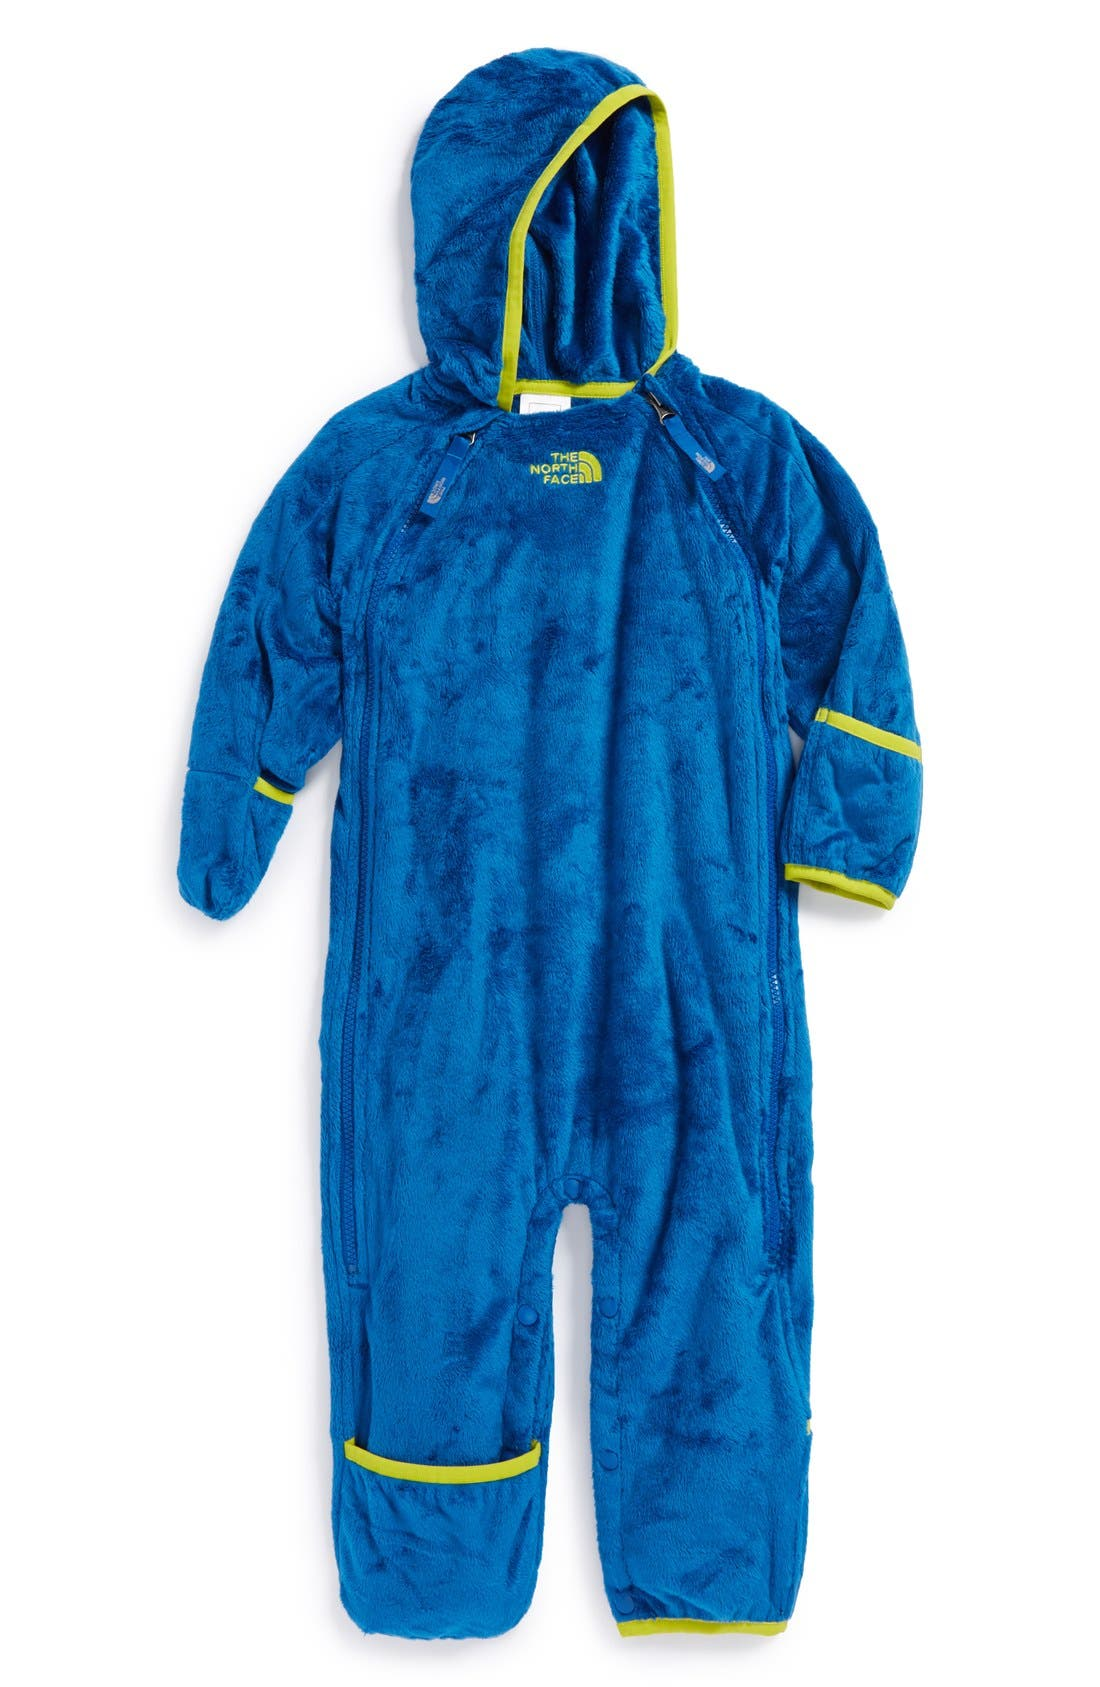 Alternate Image 1 Selected - The North Face 'Buttery' Fleece Bunting (Baby Boys)